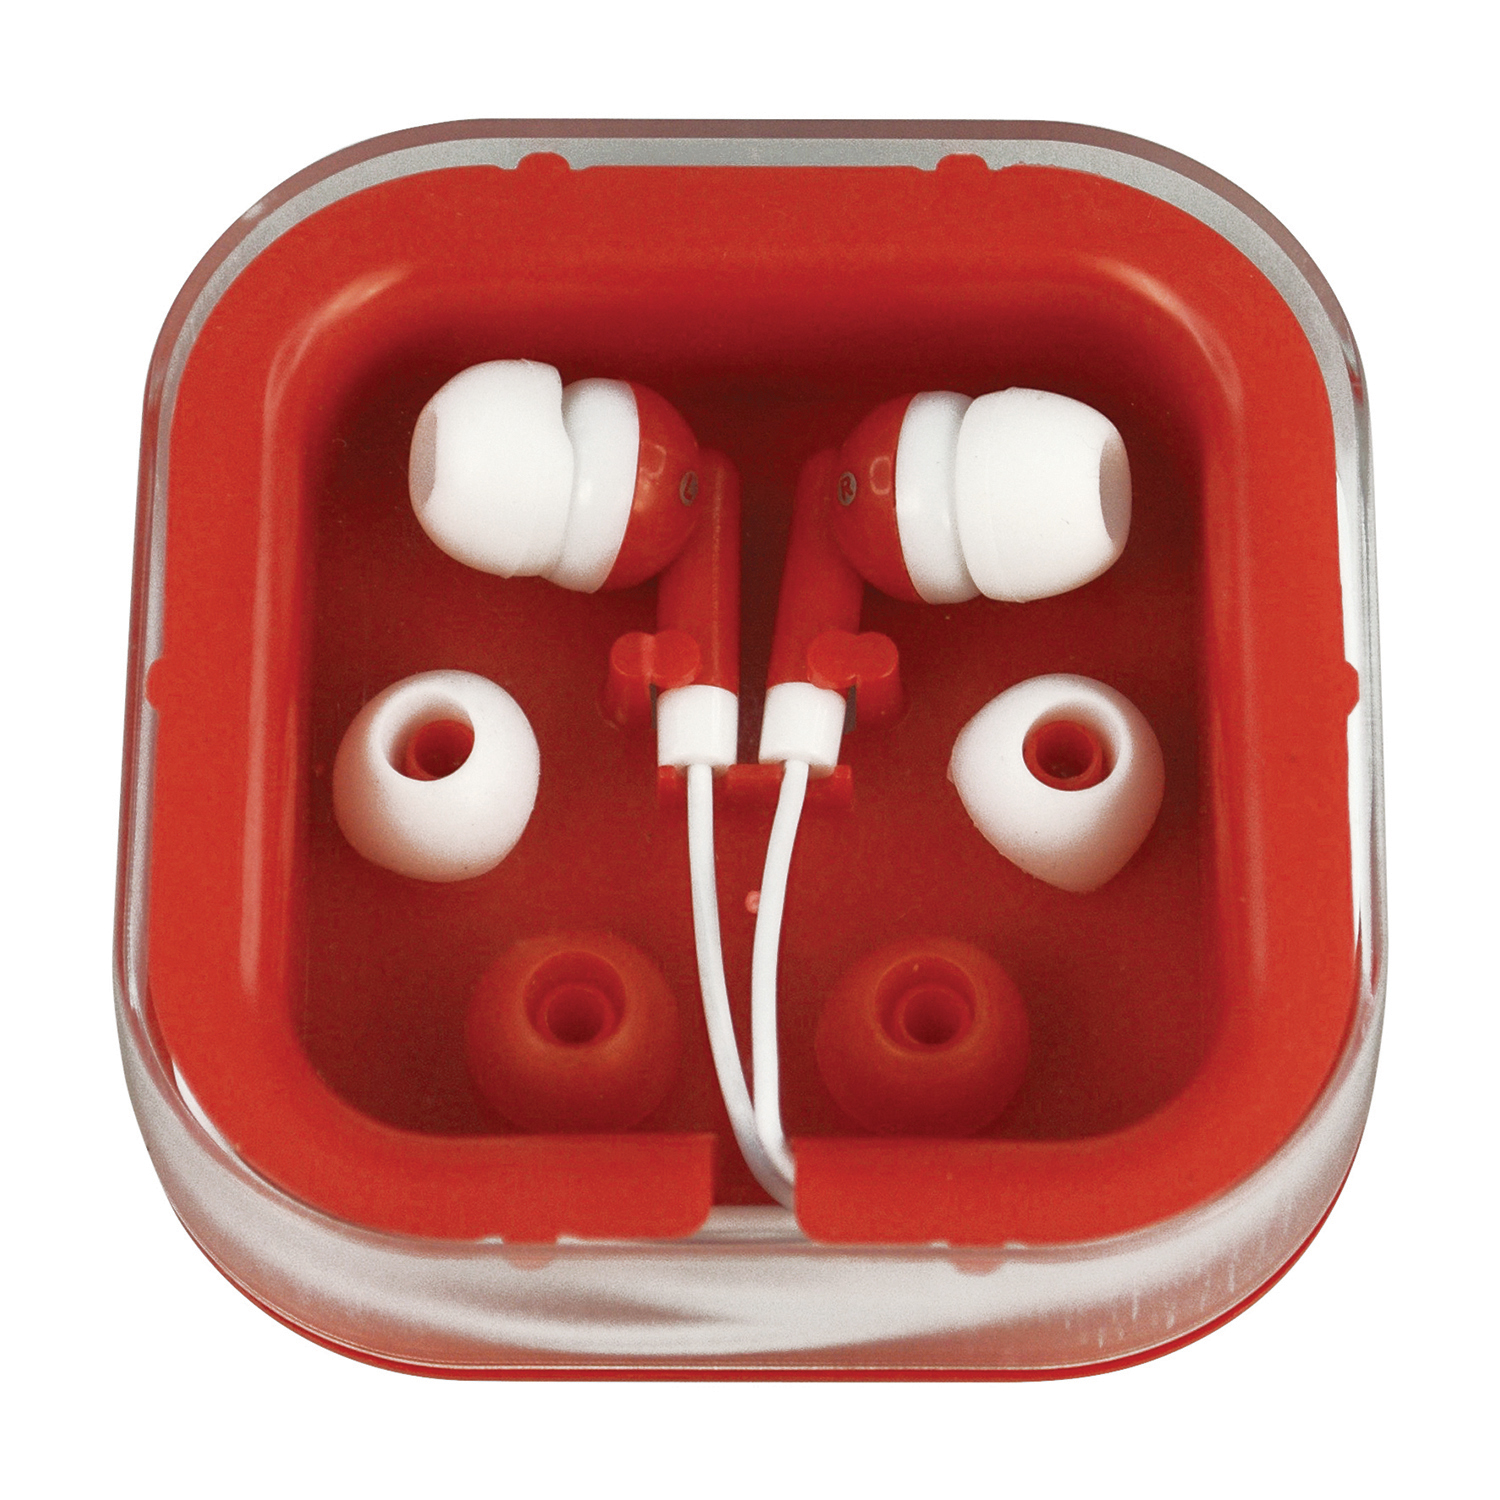 Promotional Product Bubble Ear Buds